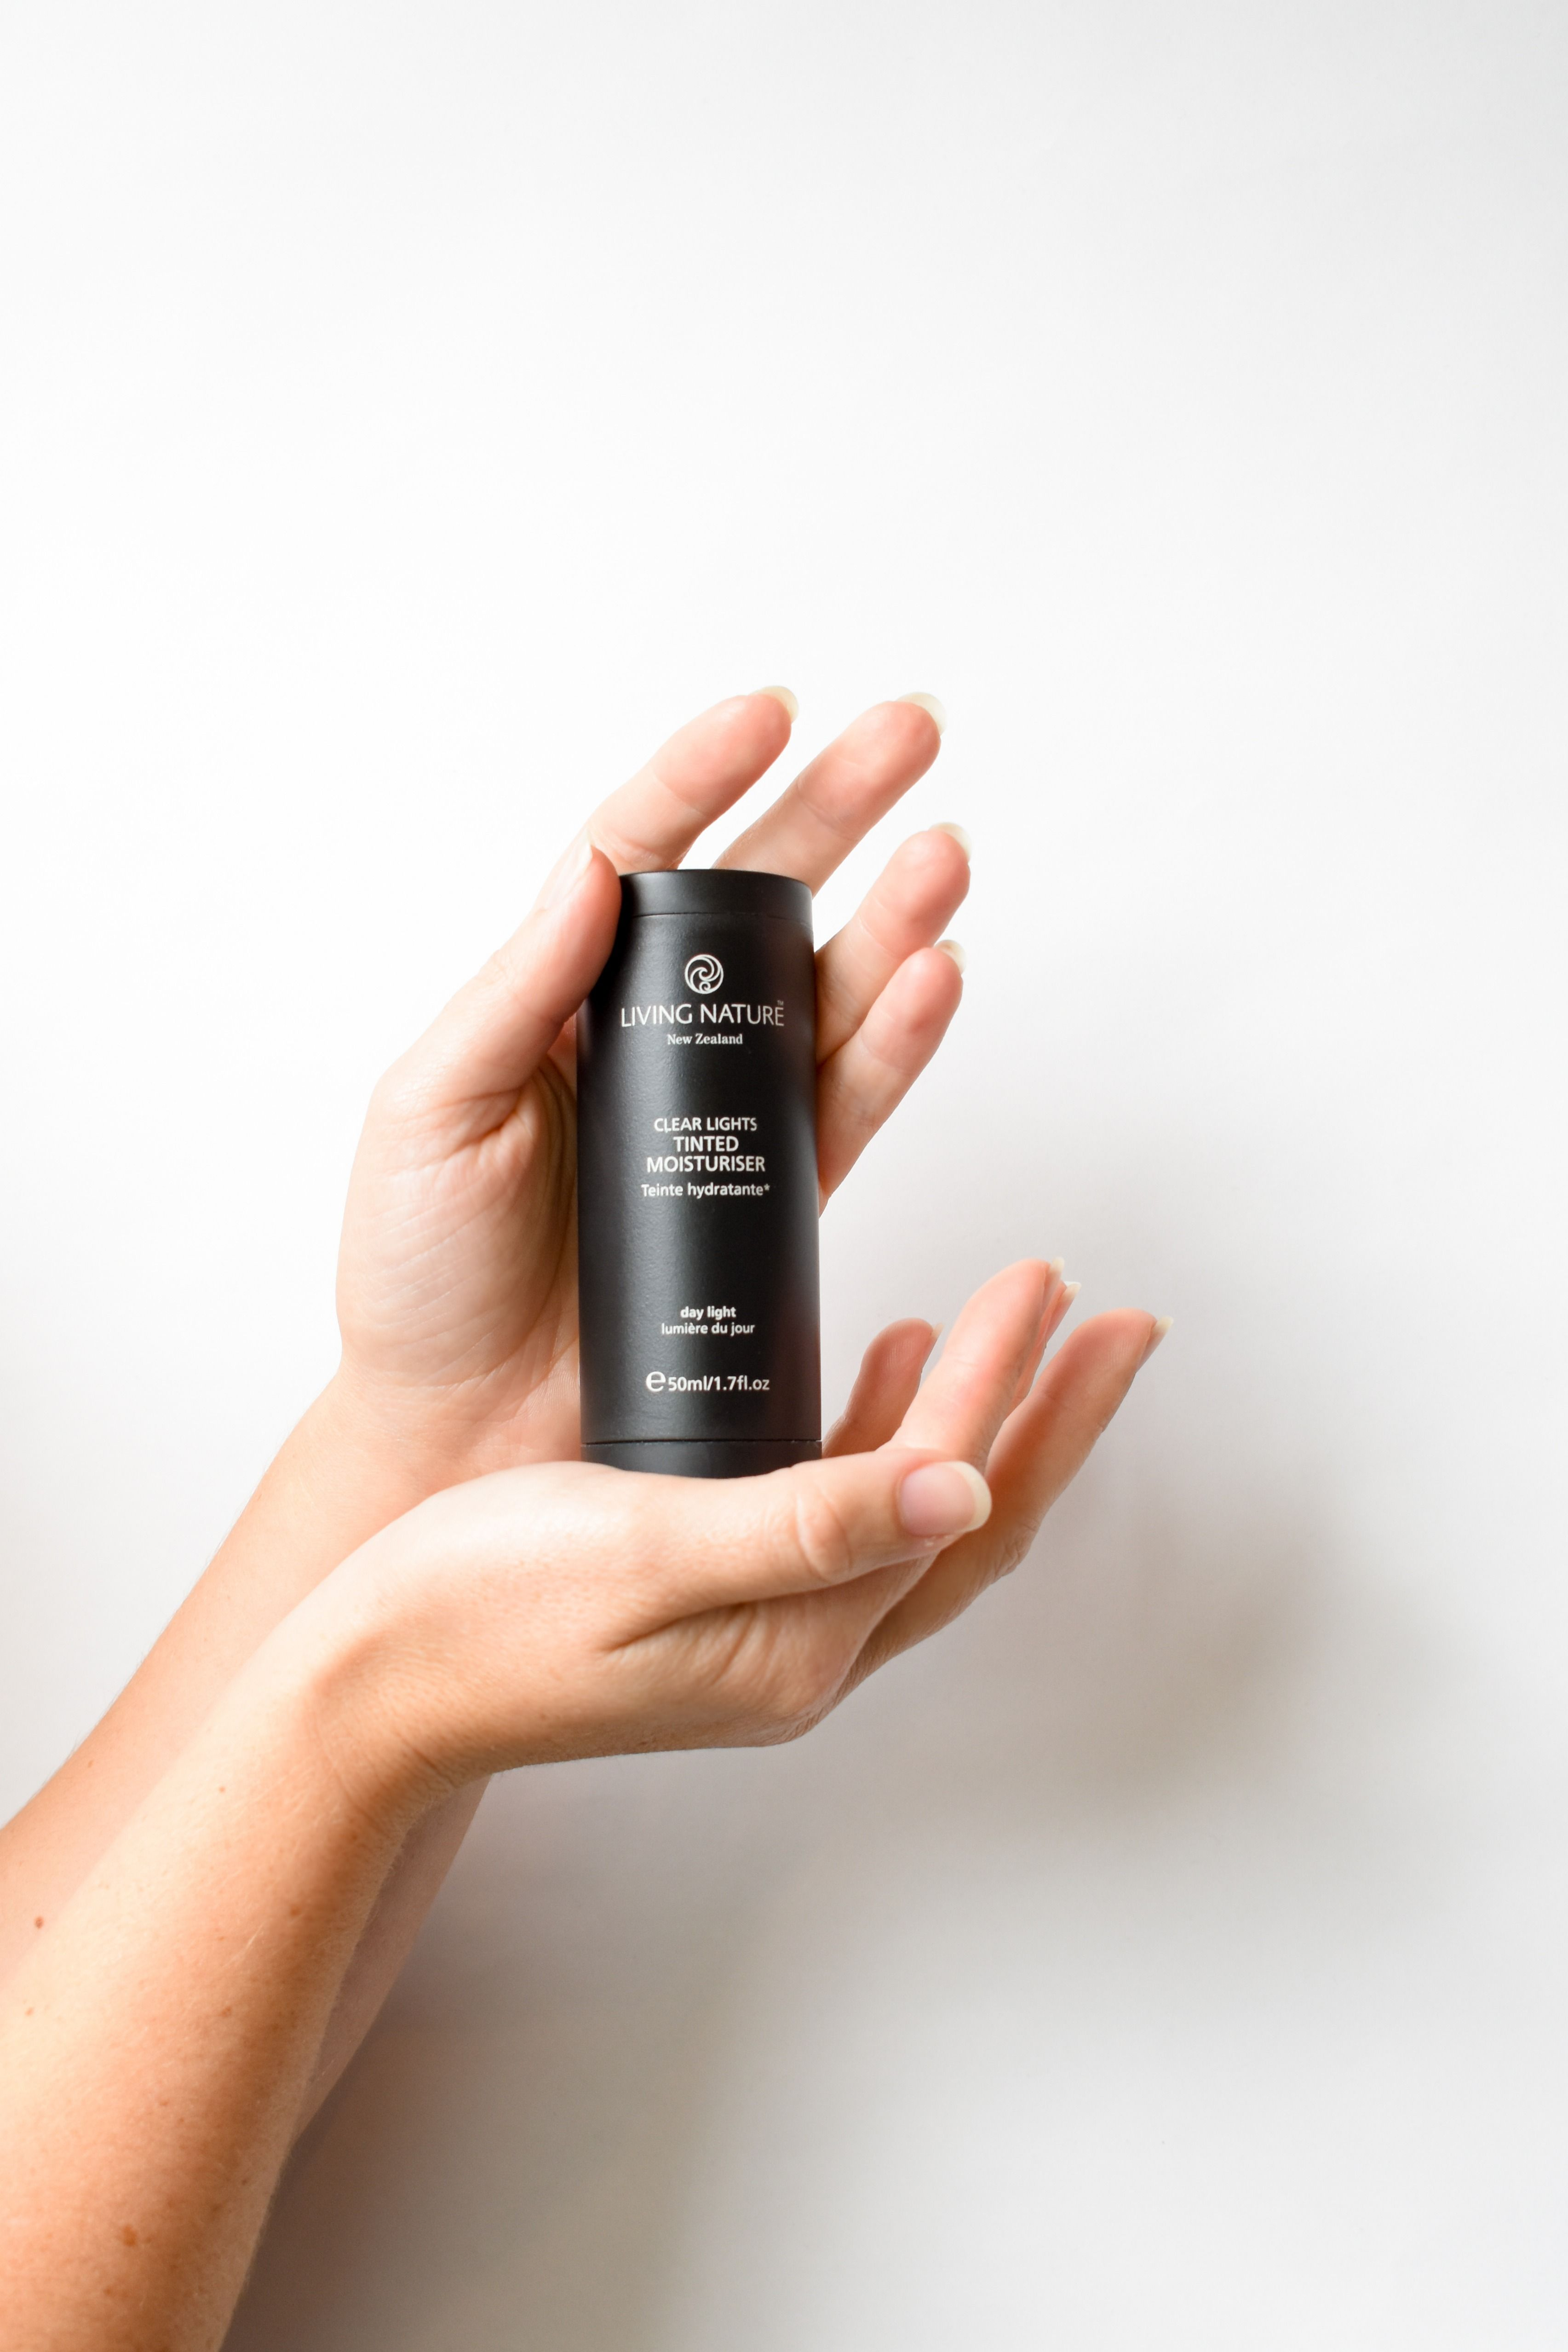 A light-to-medium coverage, oil-free tinted moisturizer